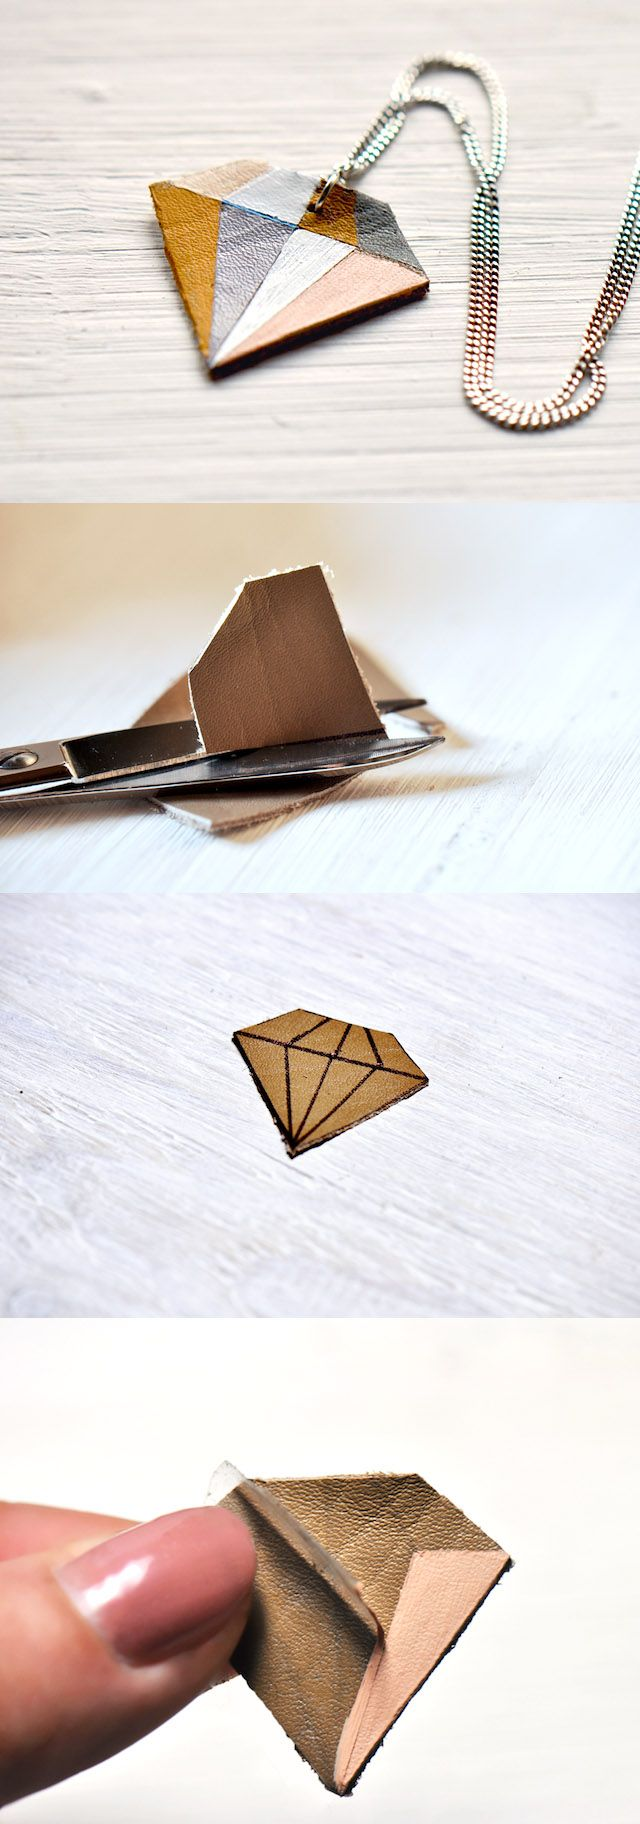 DIY: Geometric Diamond Leather Necklace  i am doing this one of these days!!